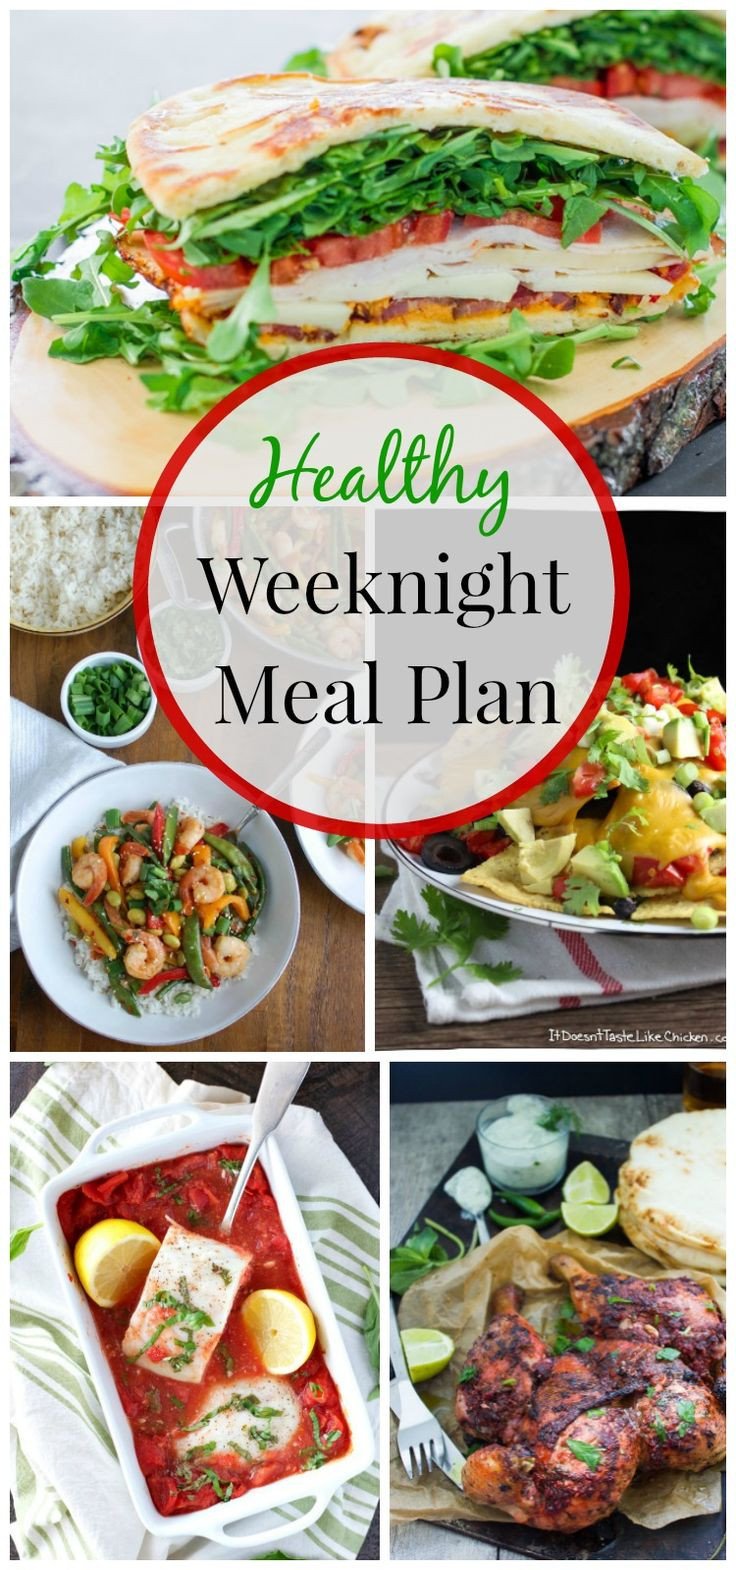 Healthy Weekday Lunches  Healthy Weeknight Meal Plan 14